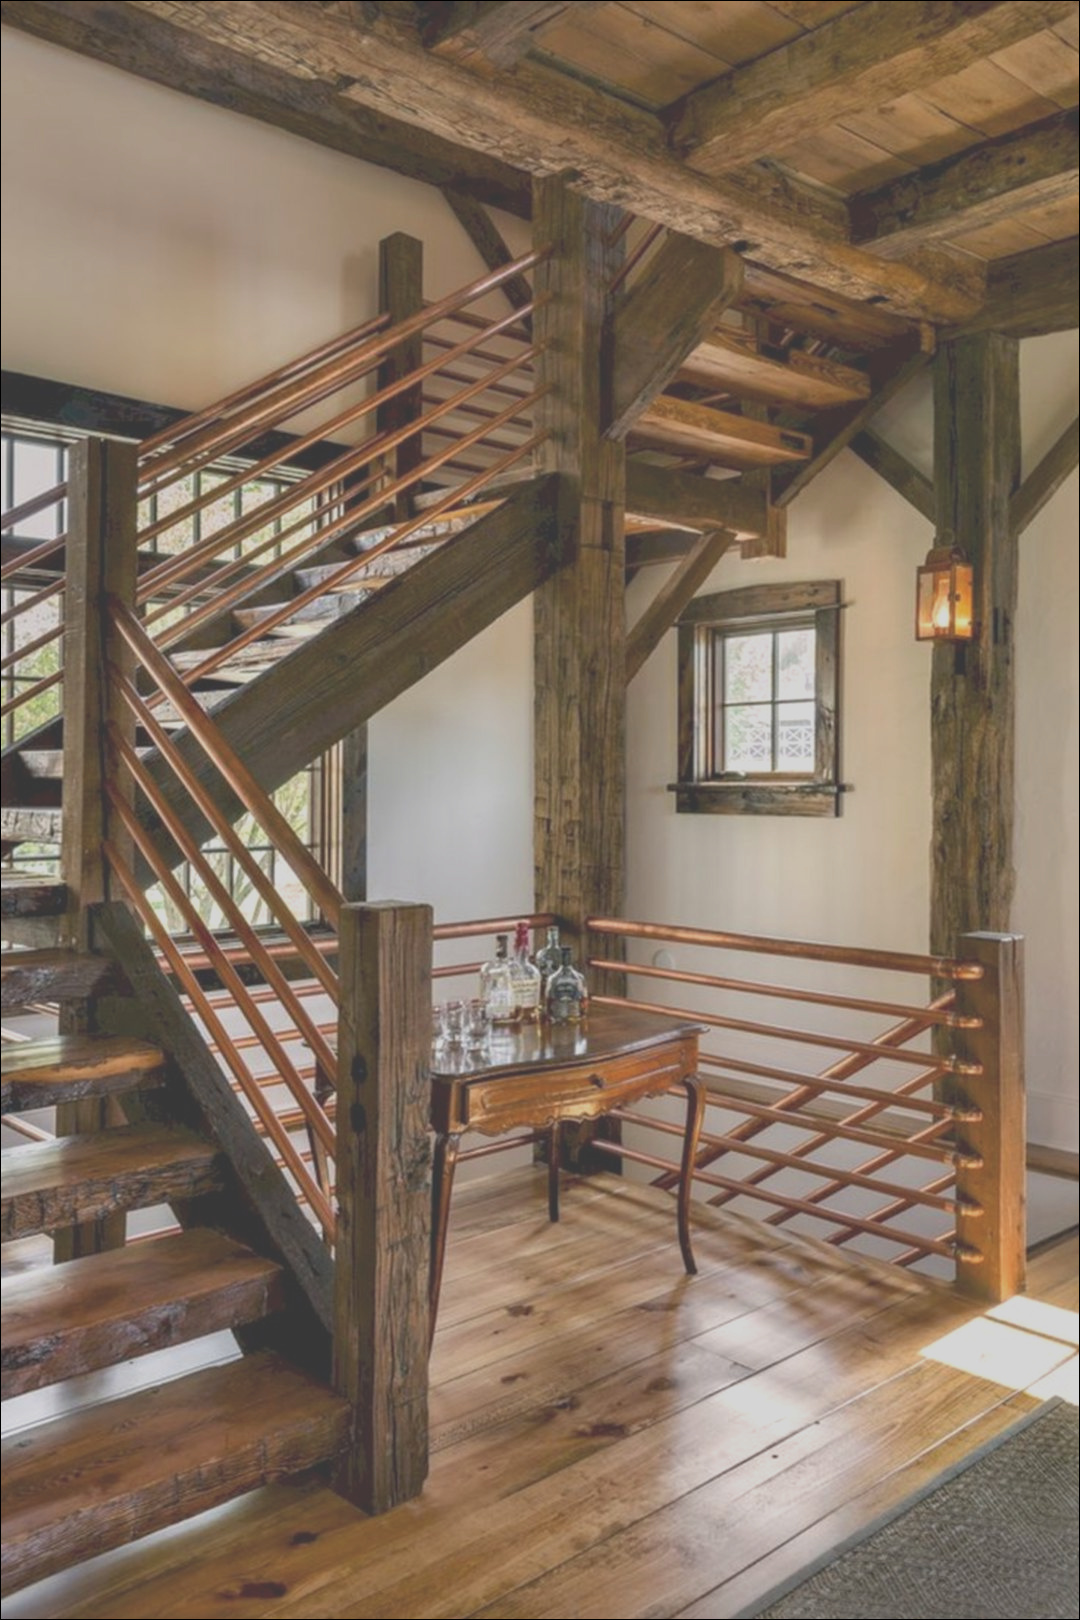 10 graceful rustic stairway design ideas that you will love when you look